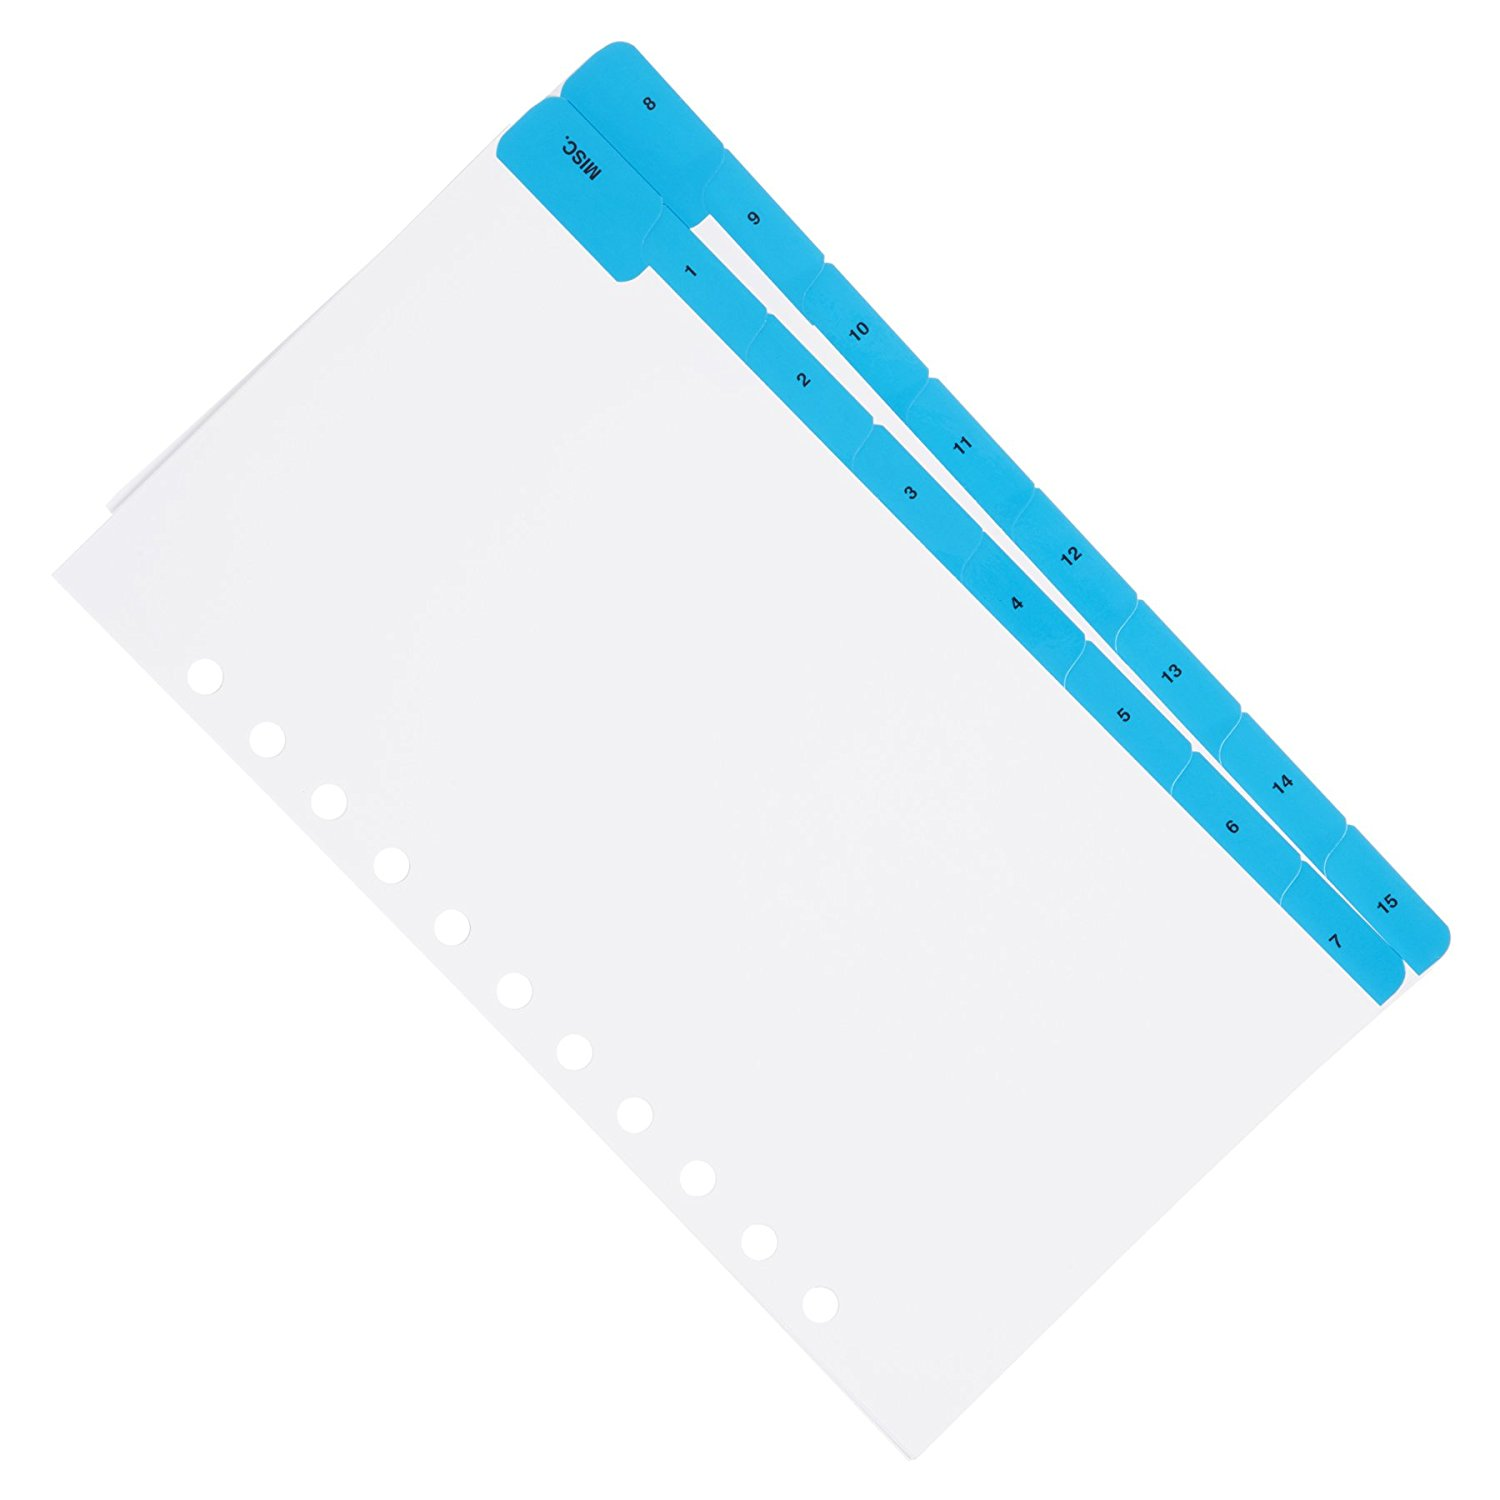 Aerobind 11 Hole MISCELLANEOUS Airline Compatible QRH Divider Tabs - 16 Blue Mylar Coated Aircraft Checklist Index Tabs - 2 Sets